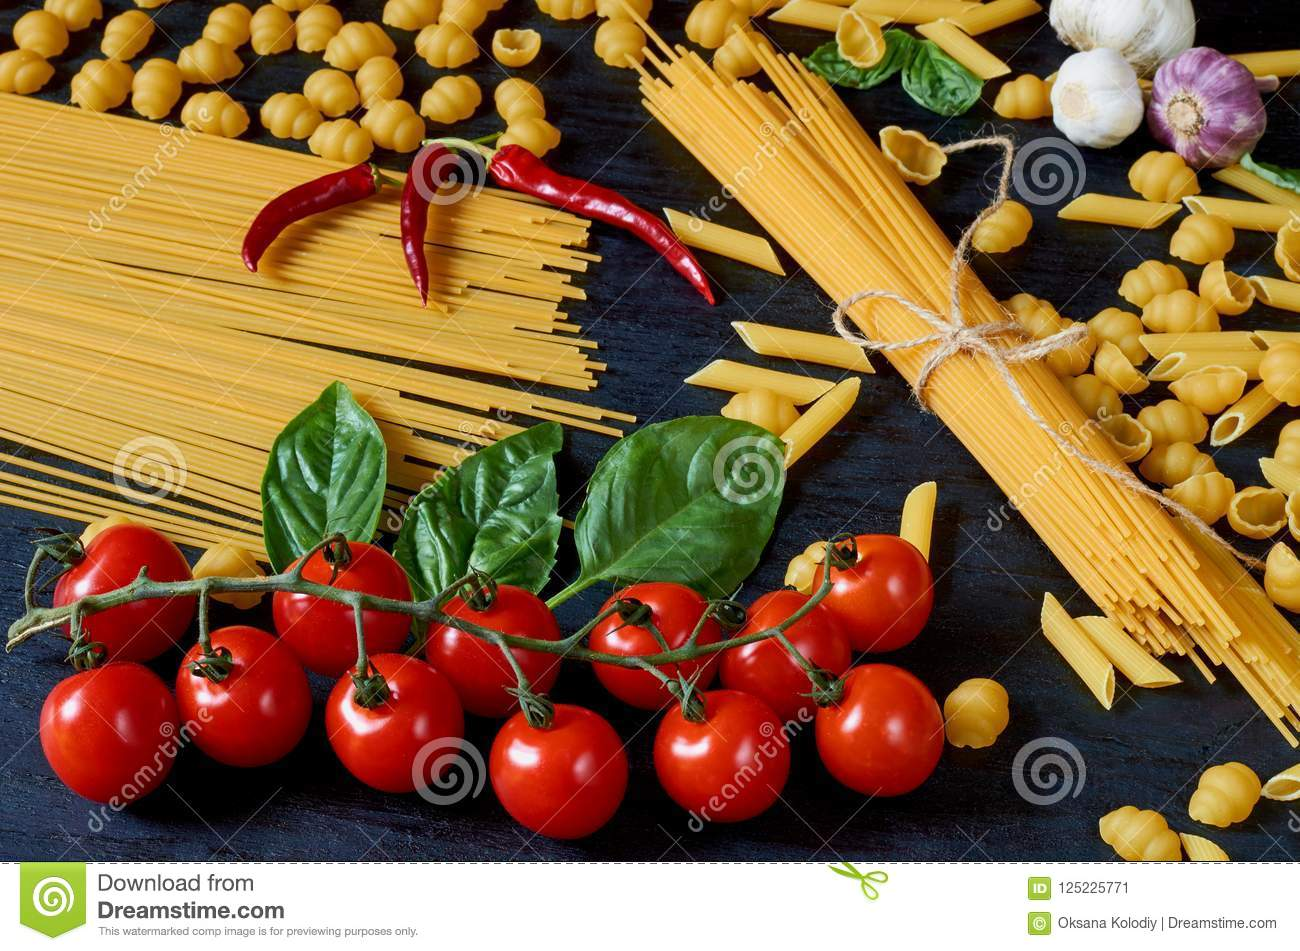 Italian traditional food, spices and ingredients for cooking as cherry tomatoes, chili pepper, garlic, basil leaves and pasta